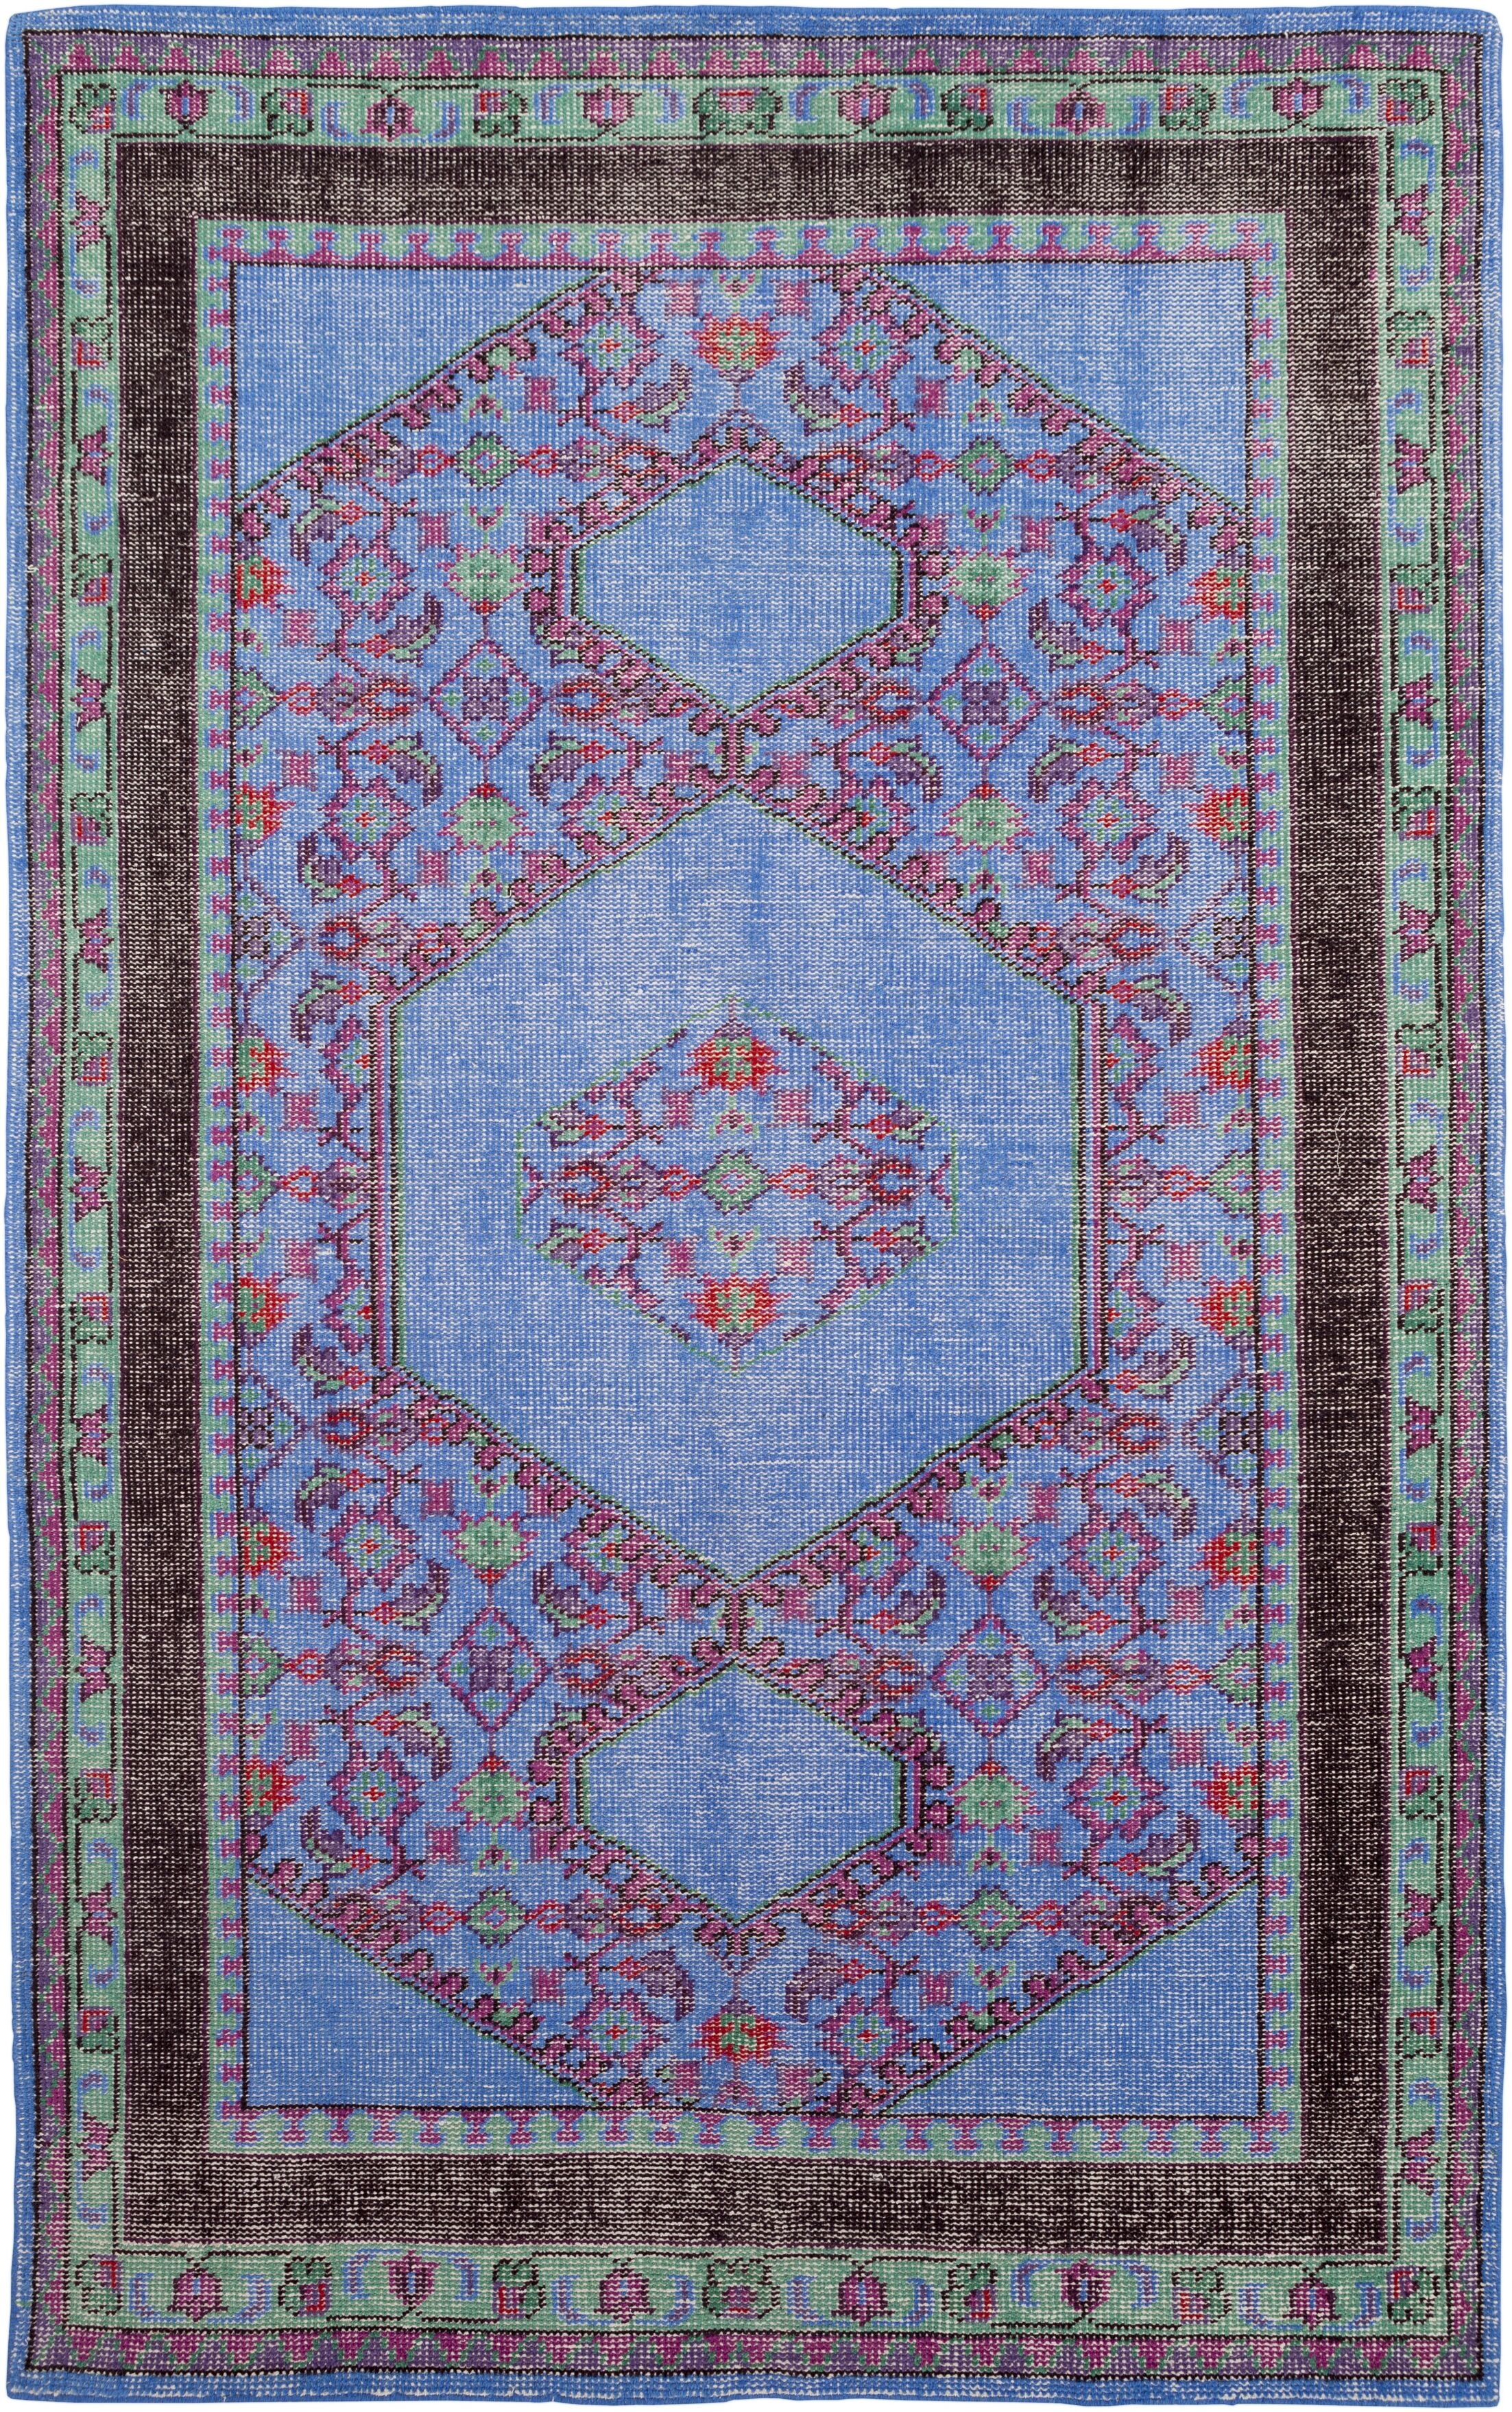 Blackshear Hand-Knotted Classic Navy/Red Area Rug Rug Size: Rectangle 5'6